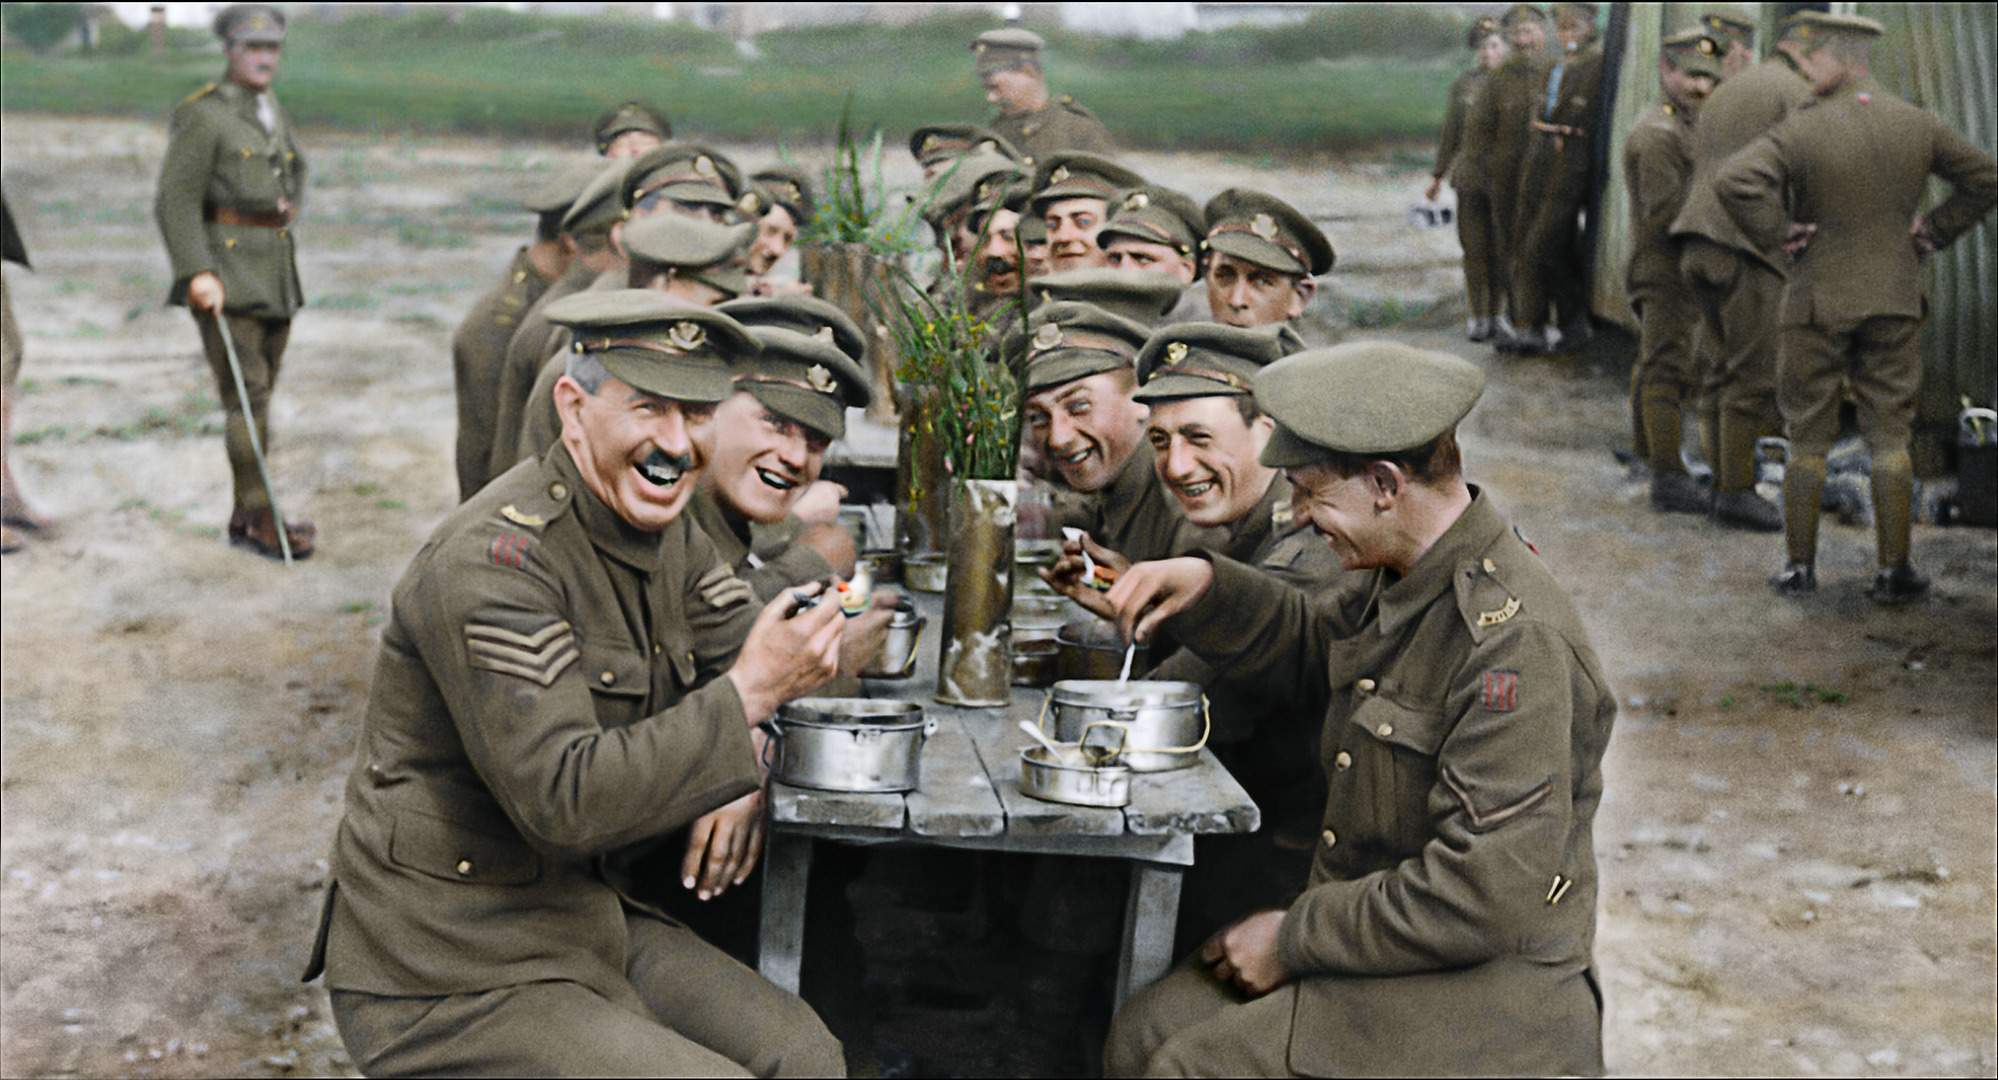 Peter Jackson's WWI documentary 'They Shall Not Grow Old' used 600 hours of interviews with 250 British soldiers.